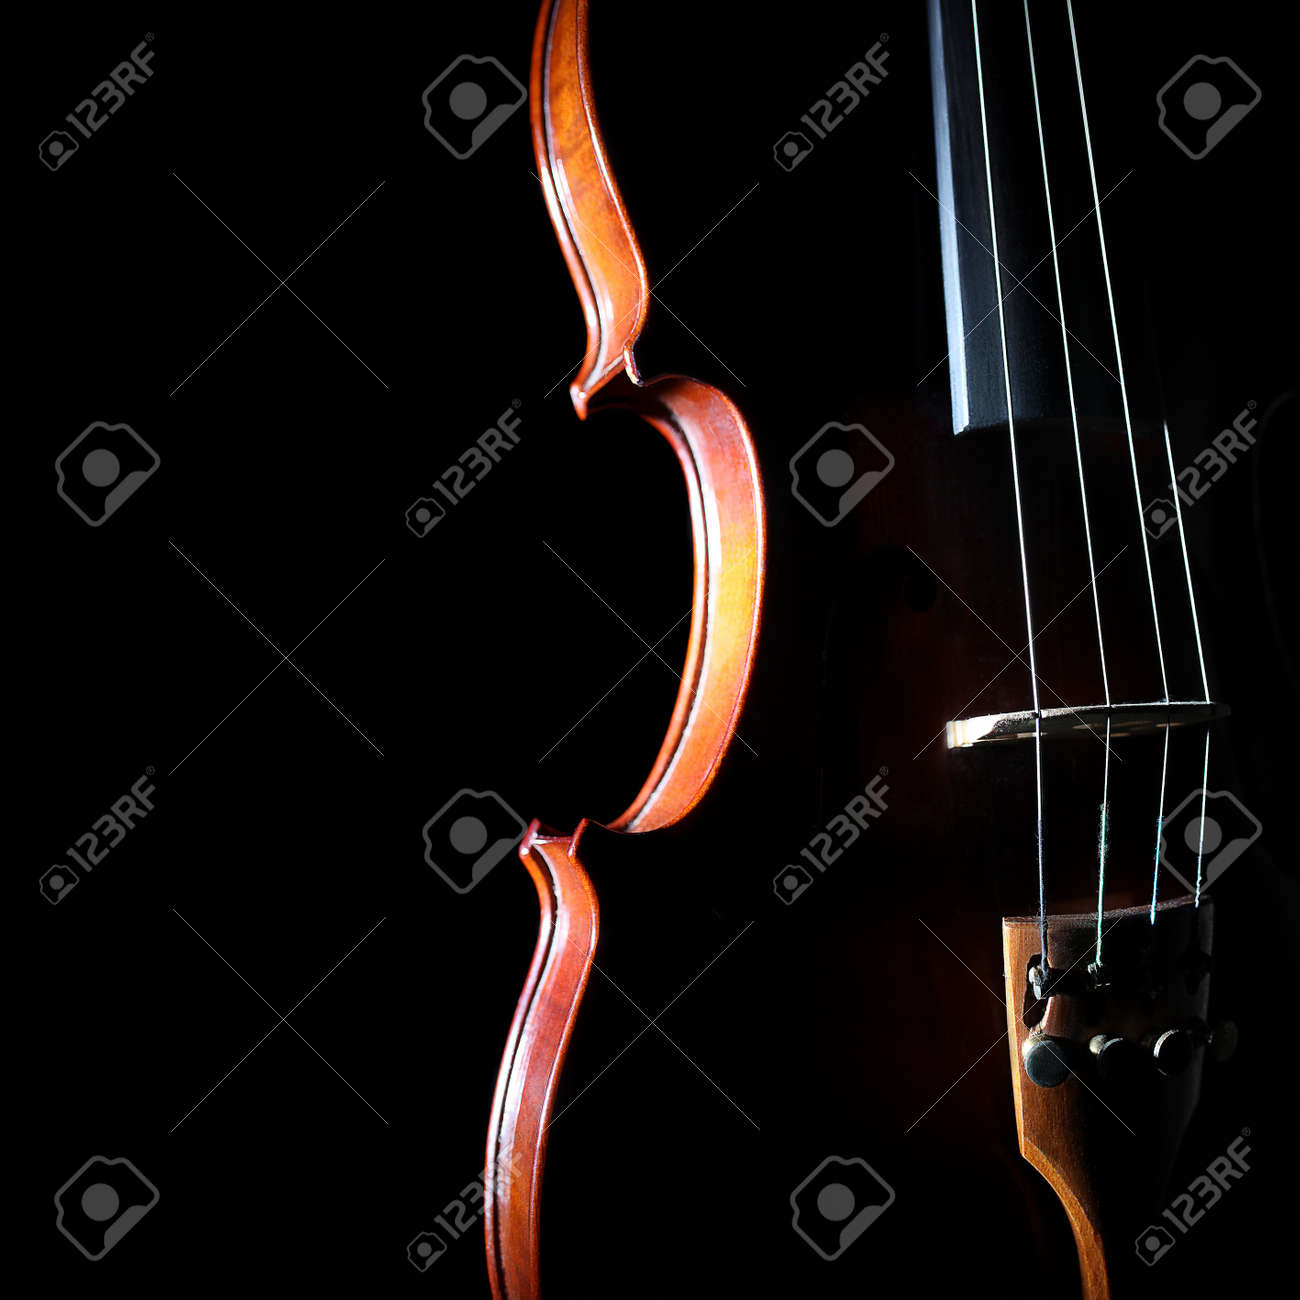 Violin orchestra musical instruments Silhouette string closeup on black - 21561947